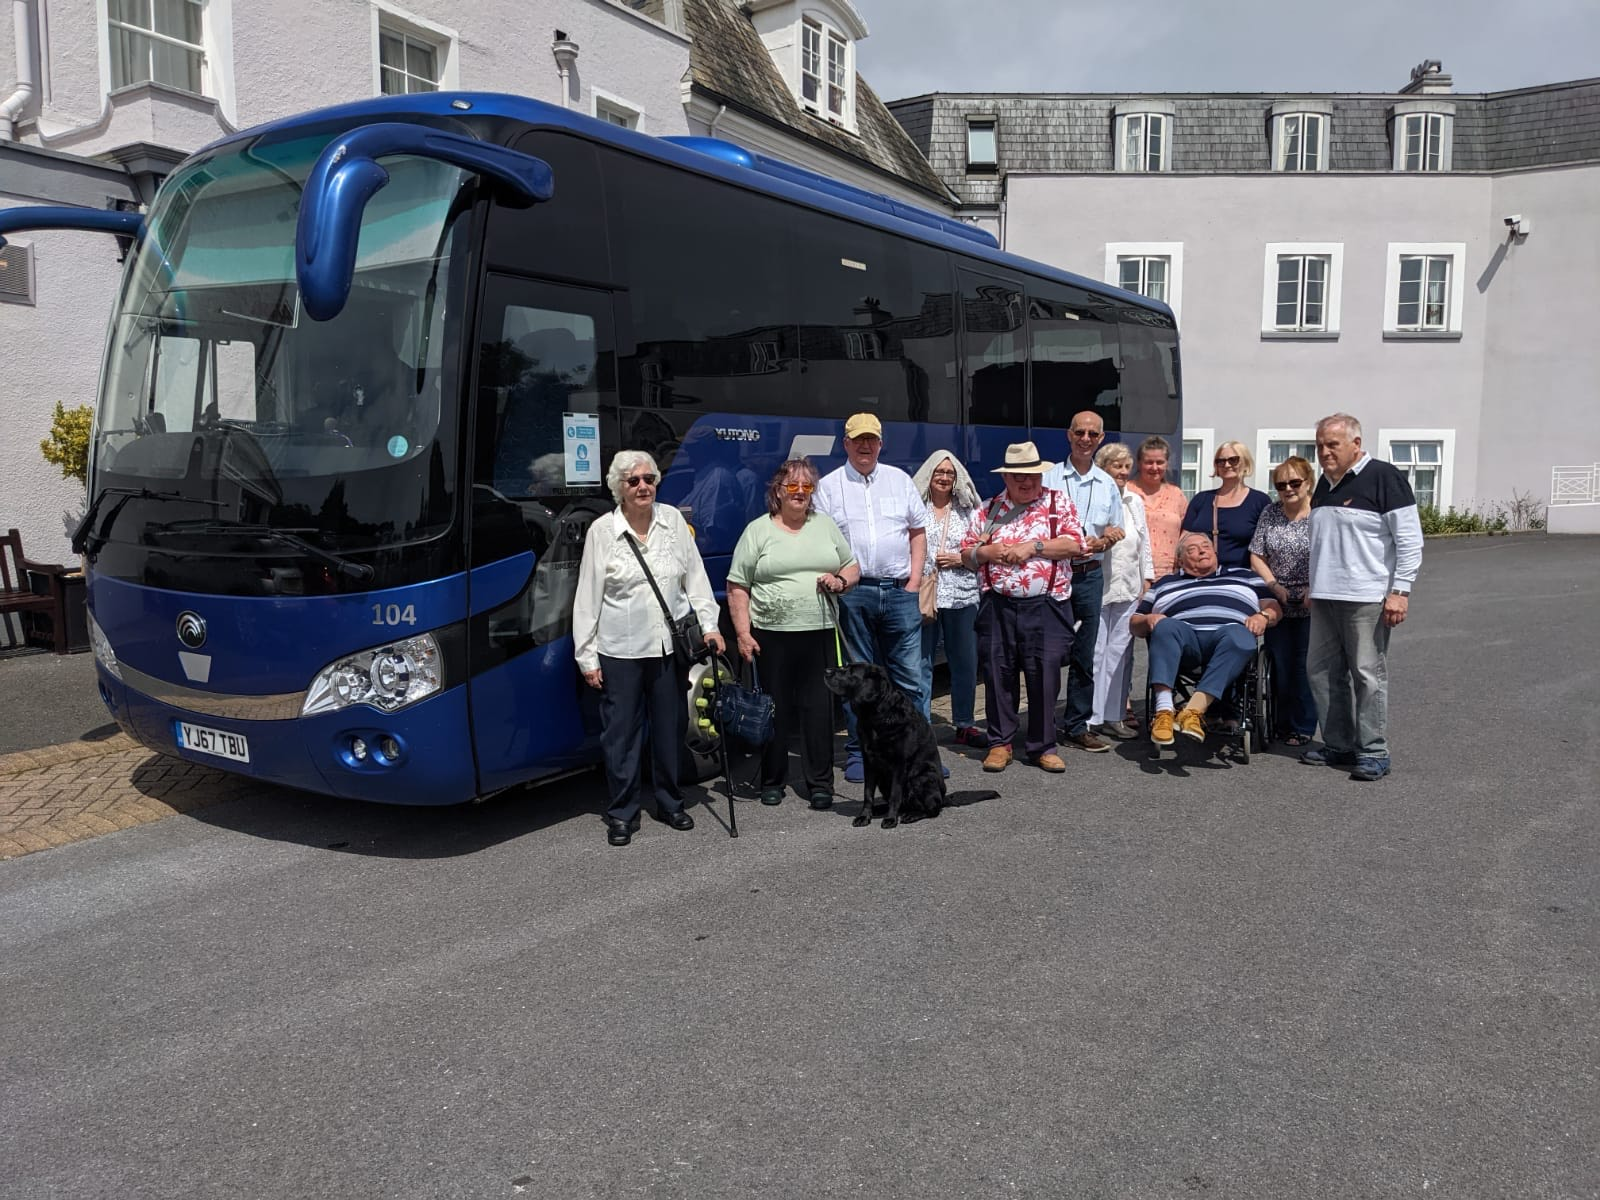 Devon Holiday Excursion In 35 Seater Coach Hire With Wheelchair Access